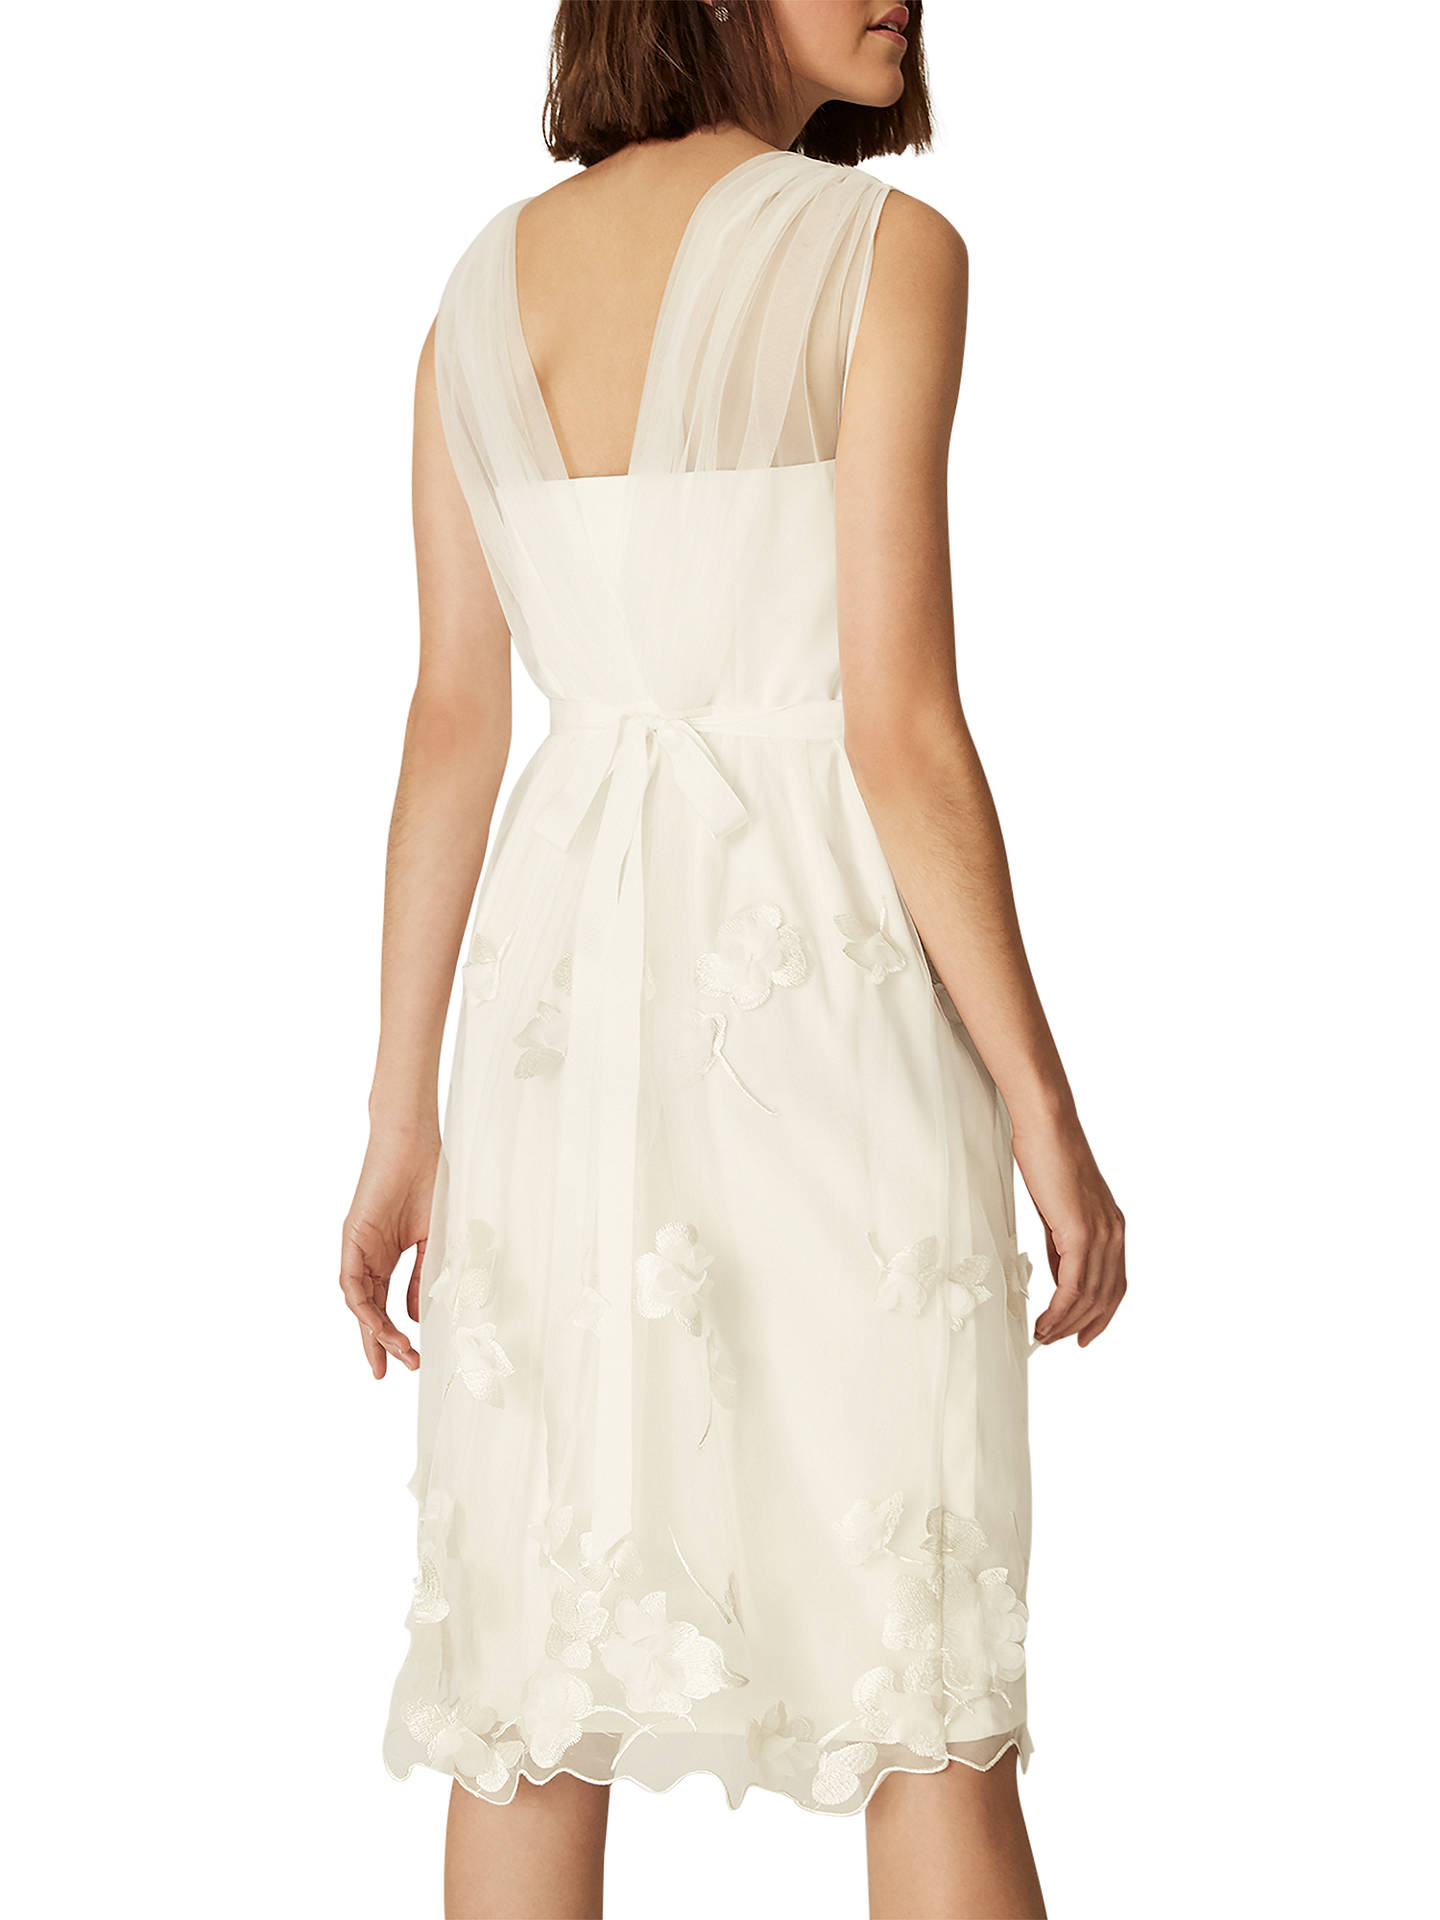 7e4cec8e453 ... Buy Phase Eight Rae Embroidered Dress